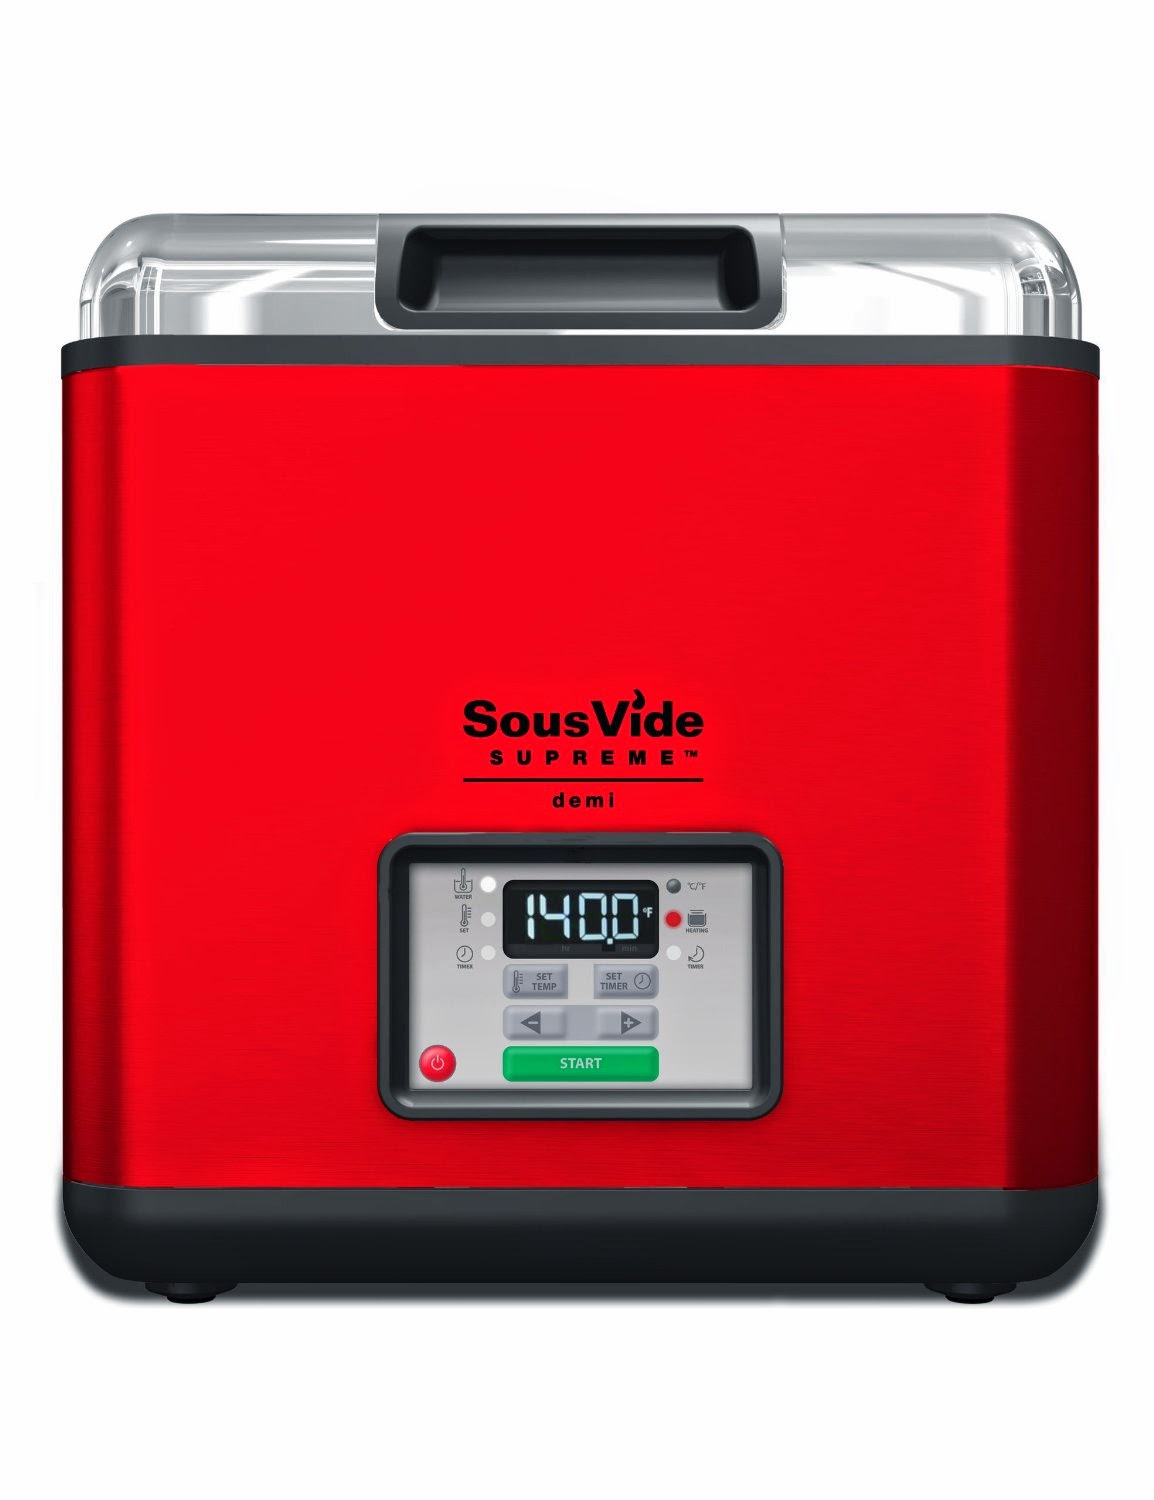 Sous Vide Supreme Demi Water Oven 8.7 liters, red, picture, review features & specifications